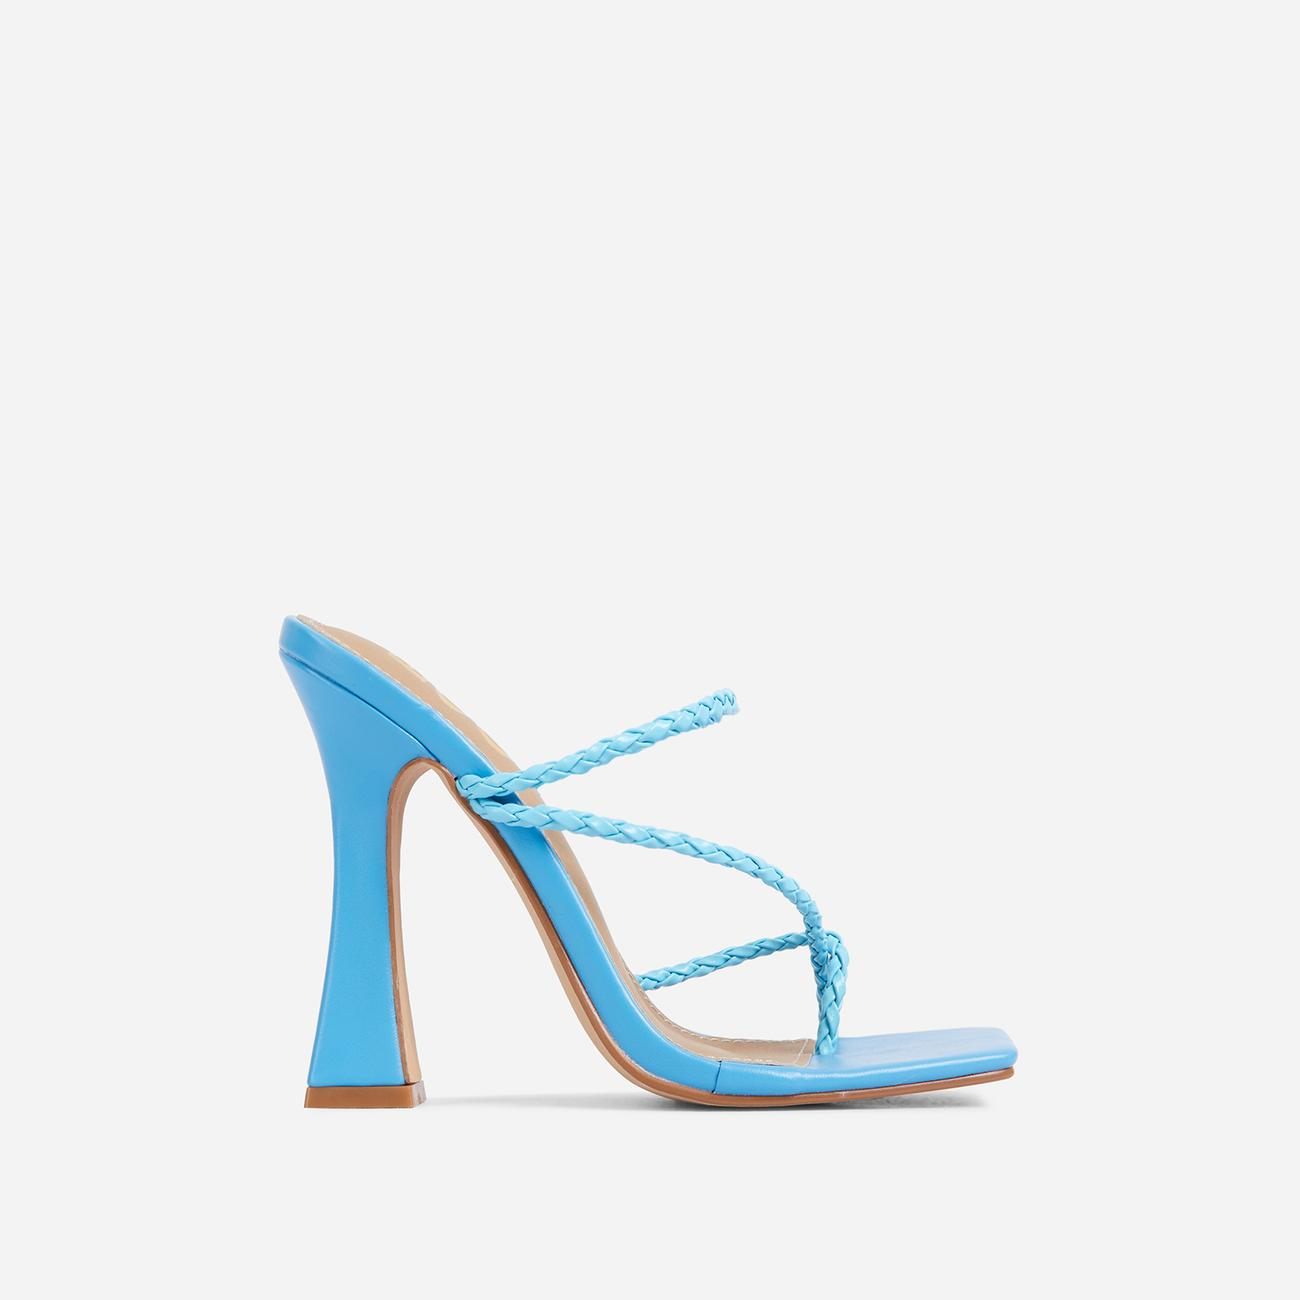 Tahiti Strappy Plait Detail Square Toe Heel Mule In Blue Faux Leather Image 1